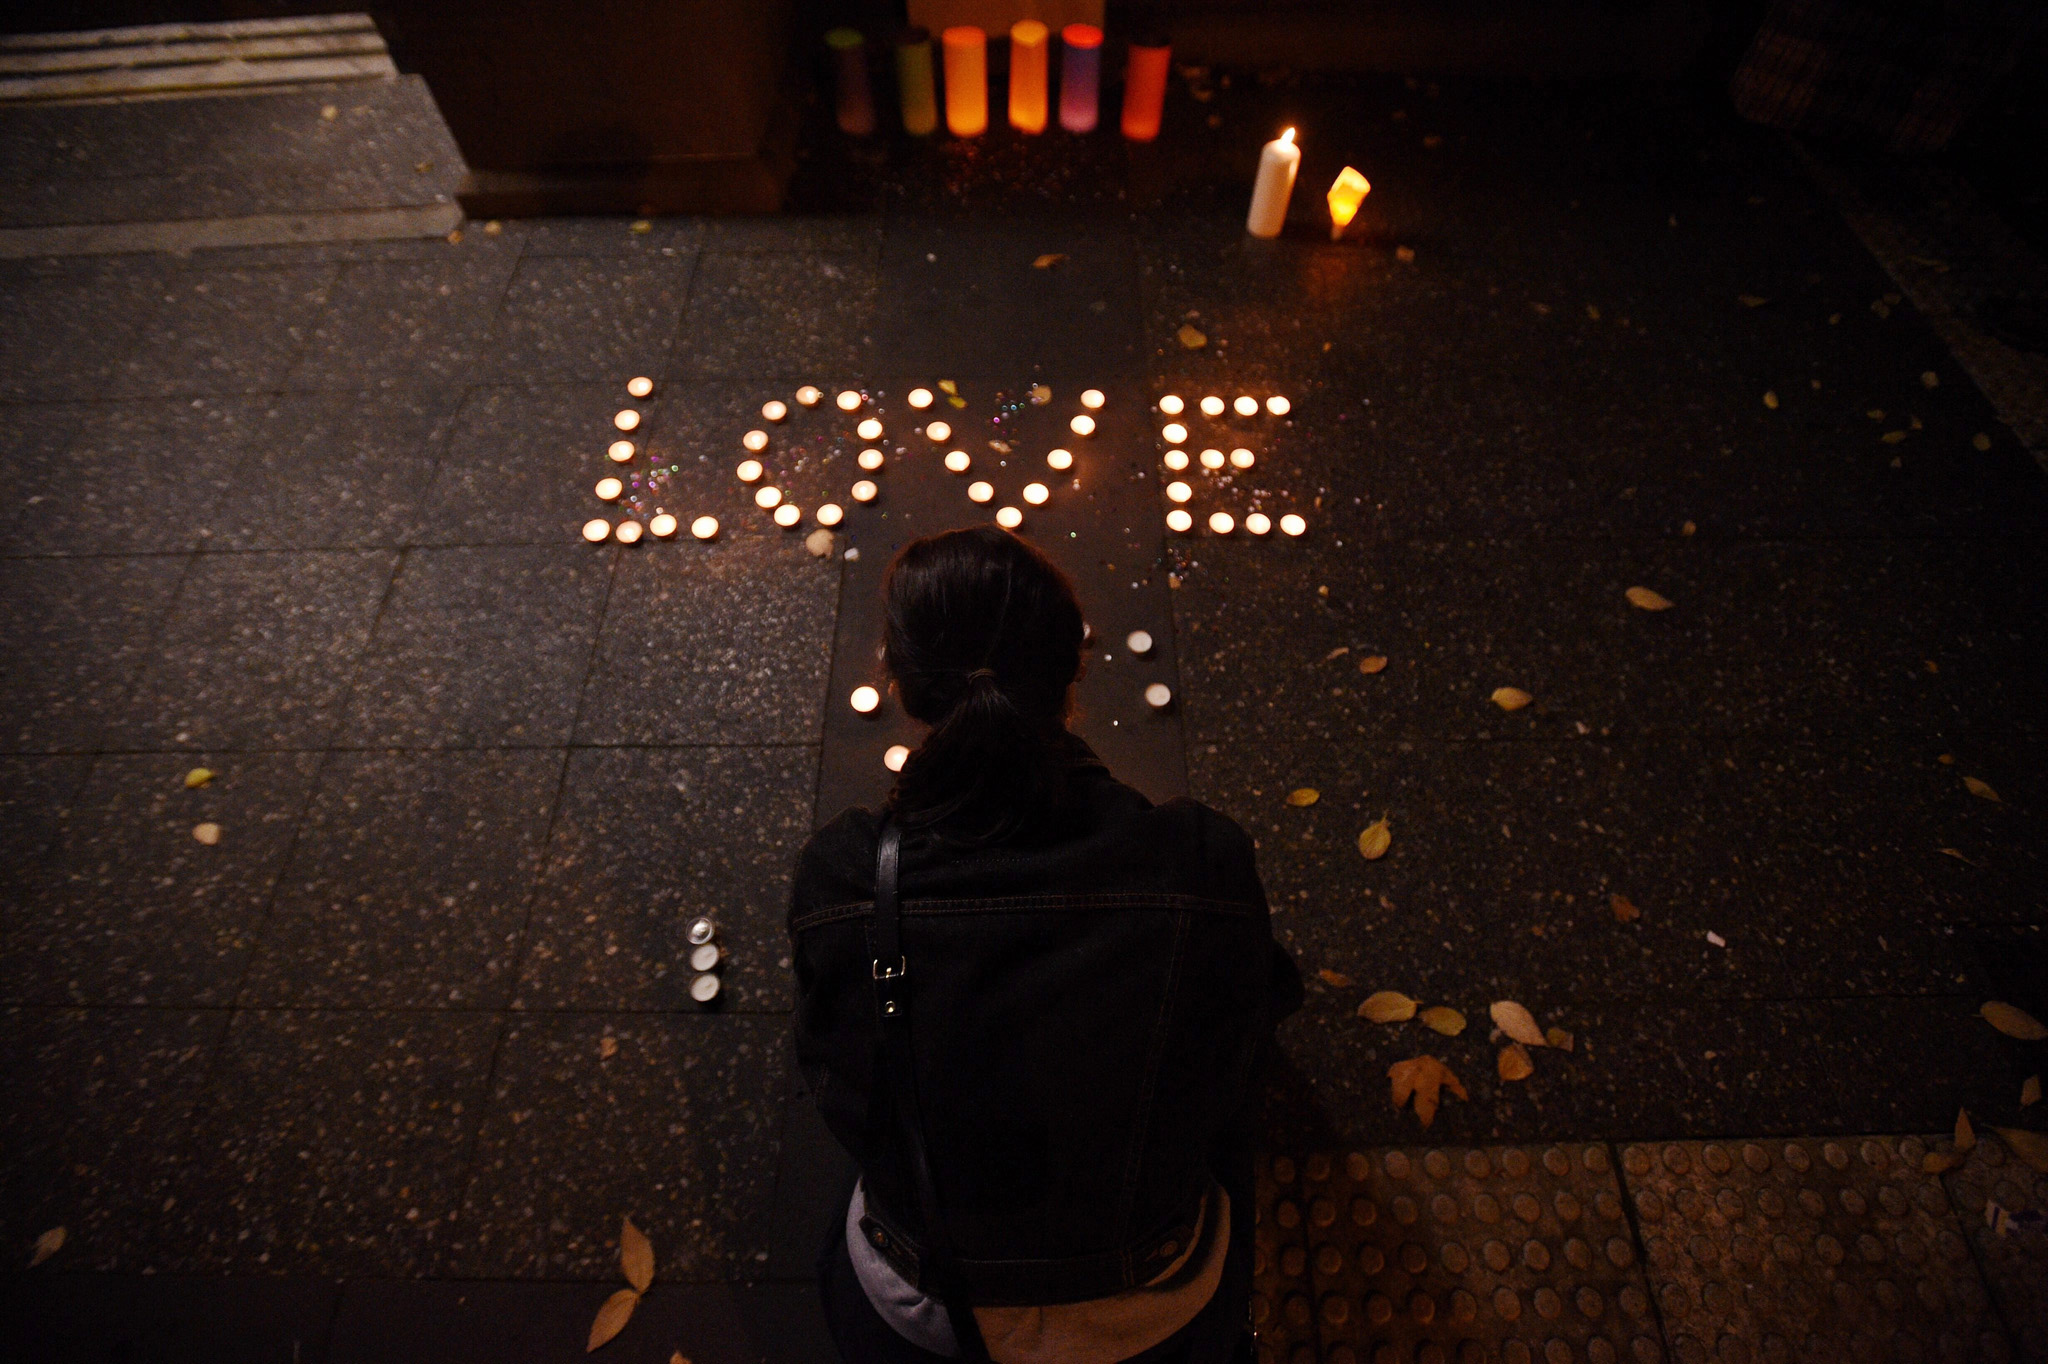 epa05360992 A woman places a candle to mourn, honor and remember the victims of the Orlando nightclub shooting at Newtown, in Sydney, Australia, 13 June 2016. At least 50 people were killed and 53 were injured in a shooting attack at an LGBT club in Orlando, Florida, in the early hours of 12 June. The shooter, Omar Mateen, 29, a US citizen of Afghan descent, was killed in an exchange of fire with the police after taking hostages at the club.  EPA/SAM MOOY AUSTRALIA AND NEW ZEALAND OUT